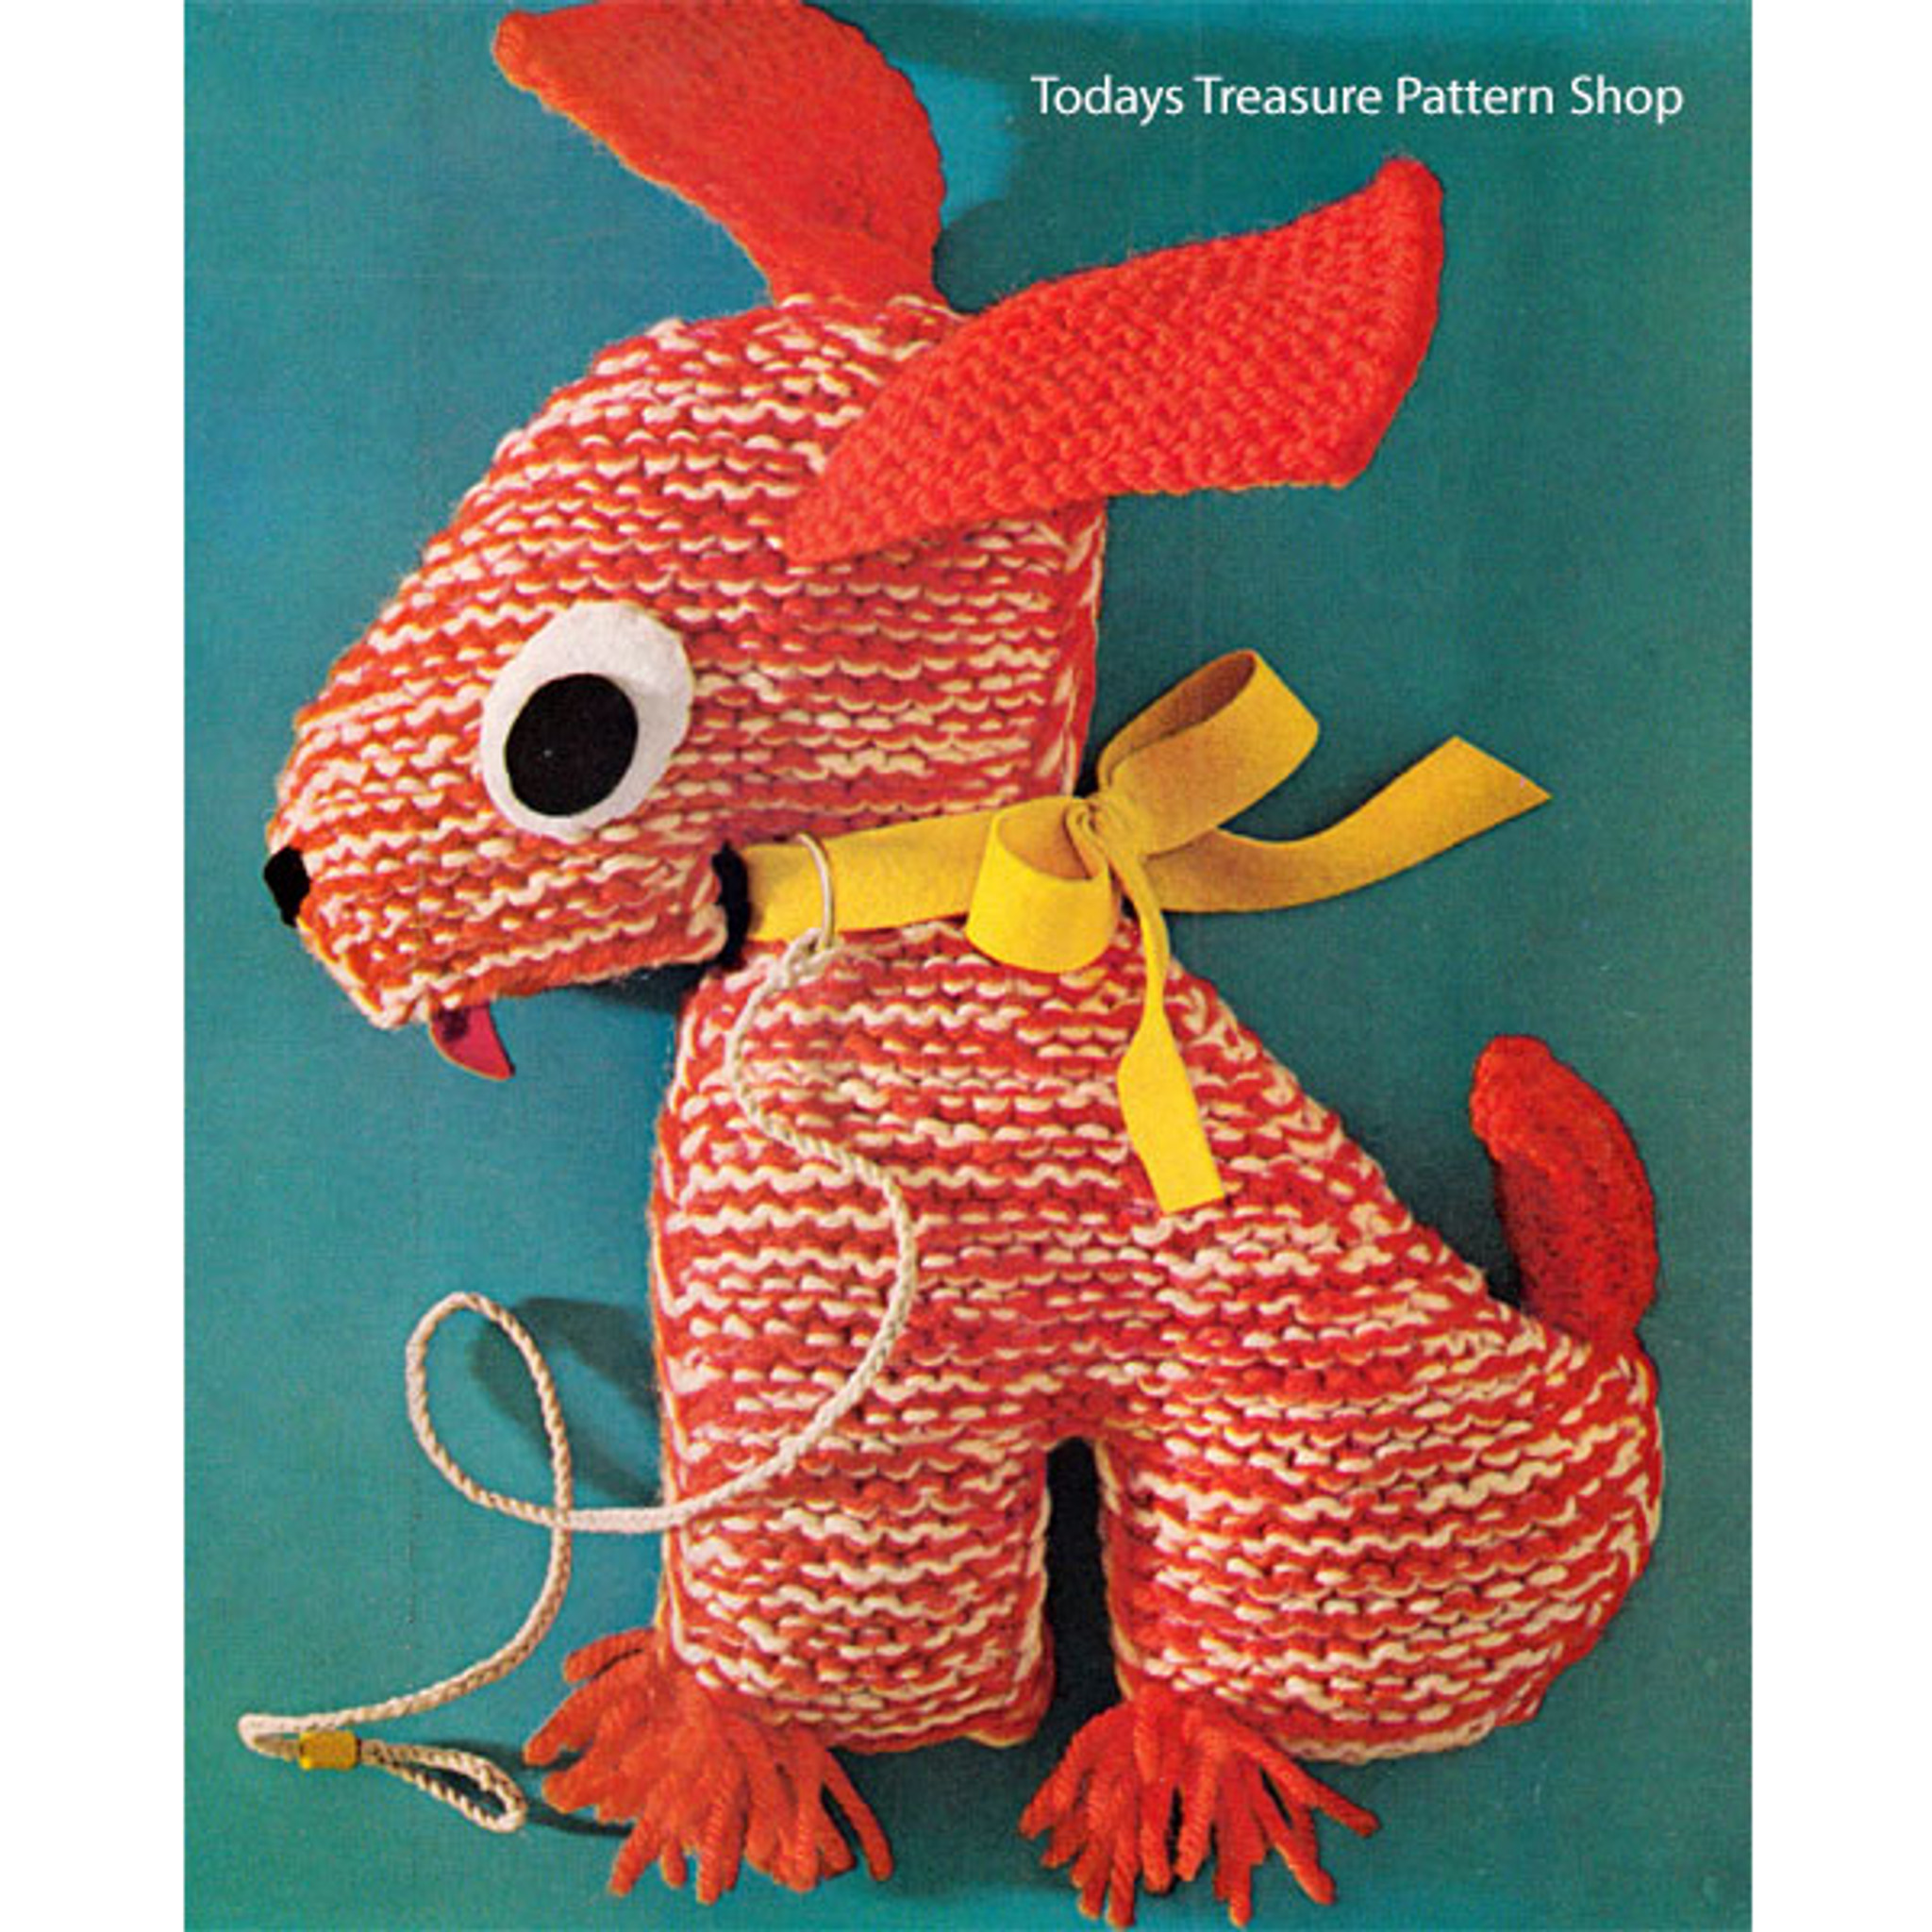 Basset Hound Dog Knitting Pattern Stuffed Toy